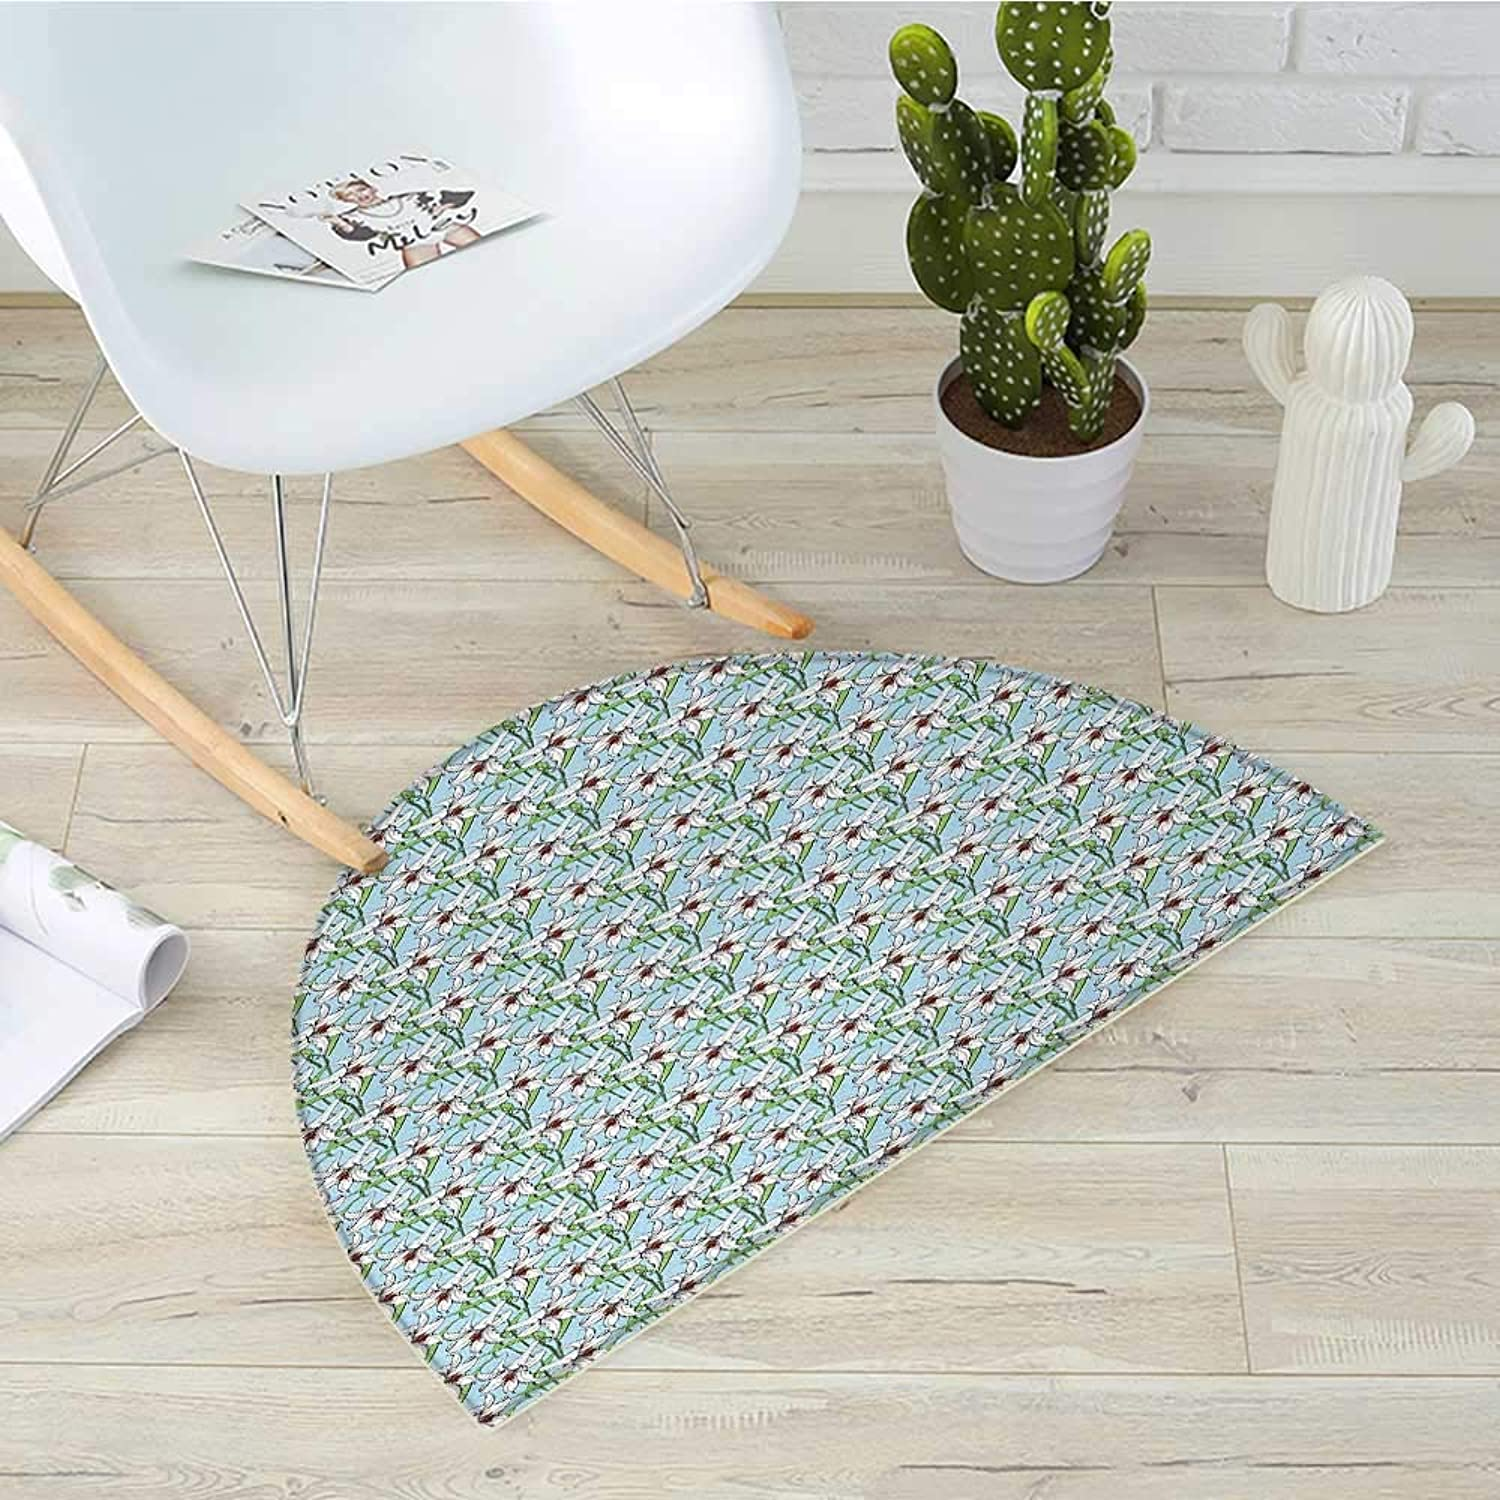 Flower Semicircle Doormat Pattern with Flourishing Artistic Lilies Garden Growth Spring Season Illustration Halfmoon doormats H 35.4  xD 53.1  Multicolor